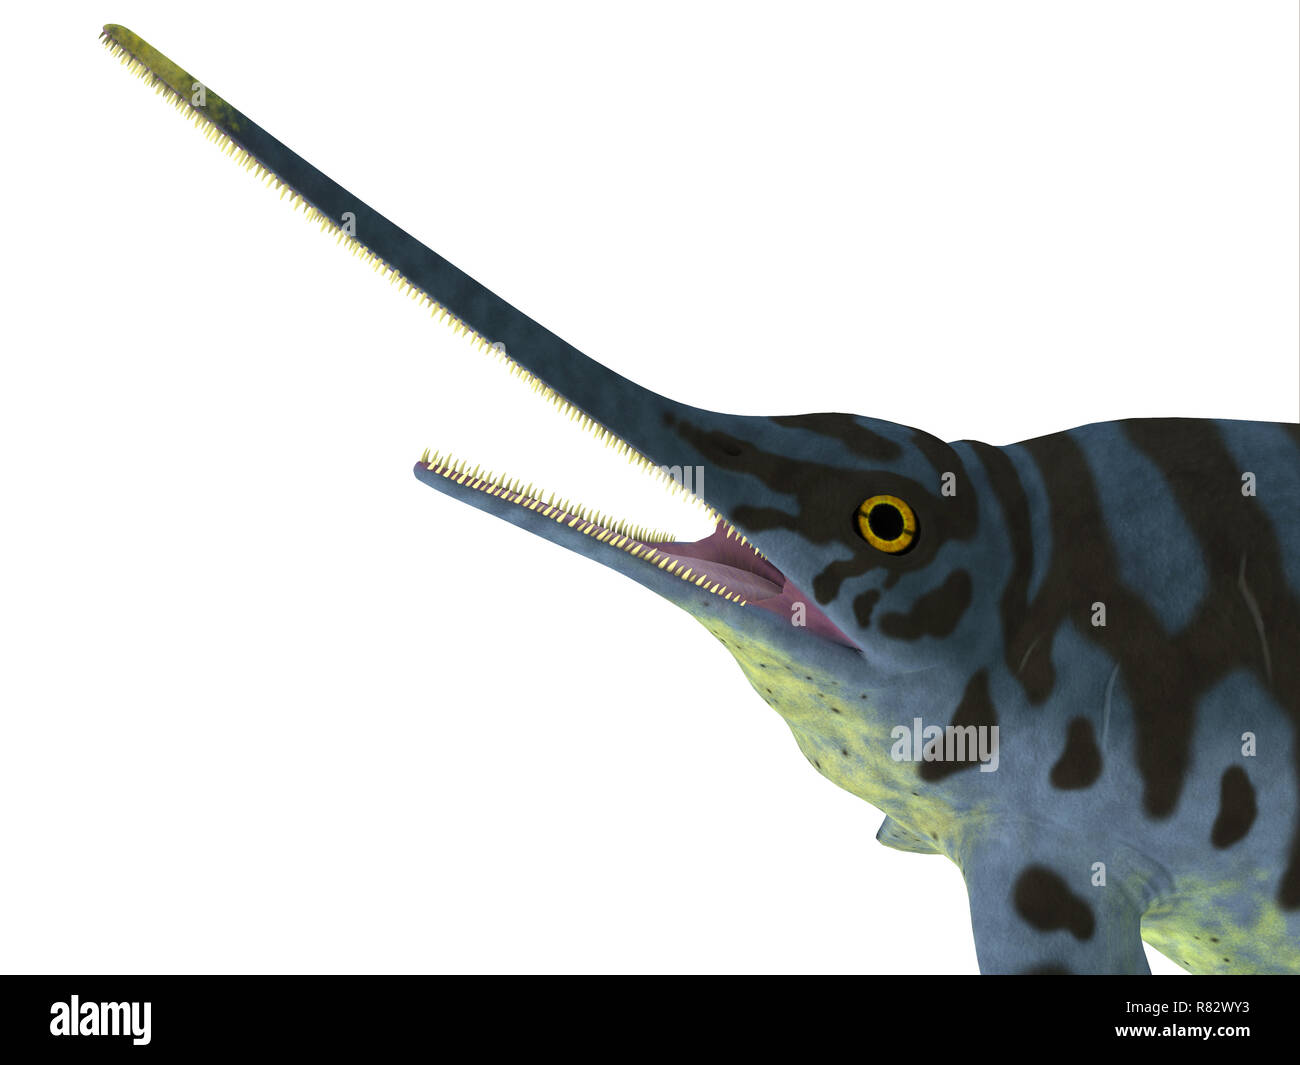 Eurhinosaurus Reptile Head - Eurhinosaurus was a carnivorous Ichthyosaur reptile that lived in Europe during the Jurassic Period. - Stock Image